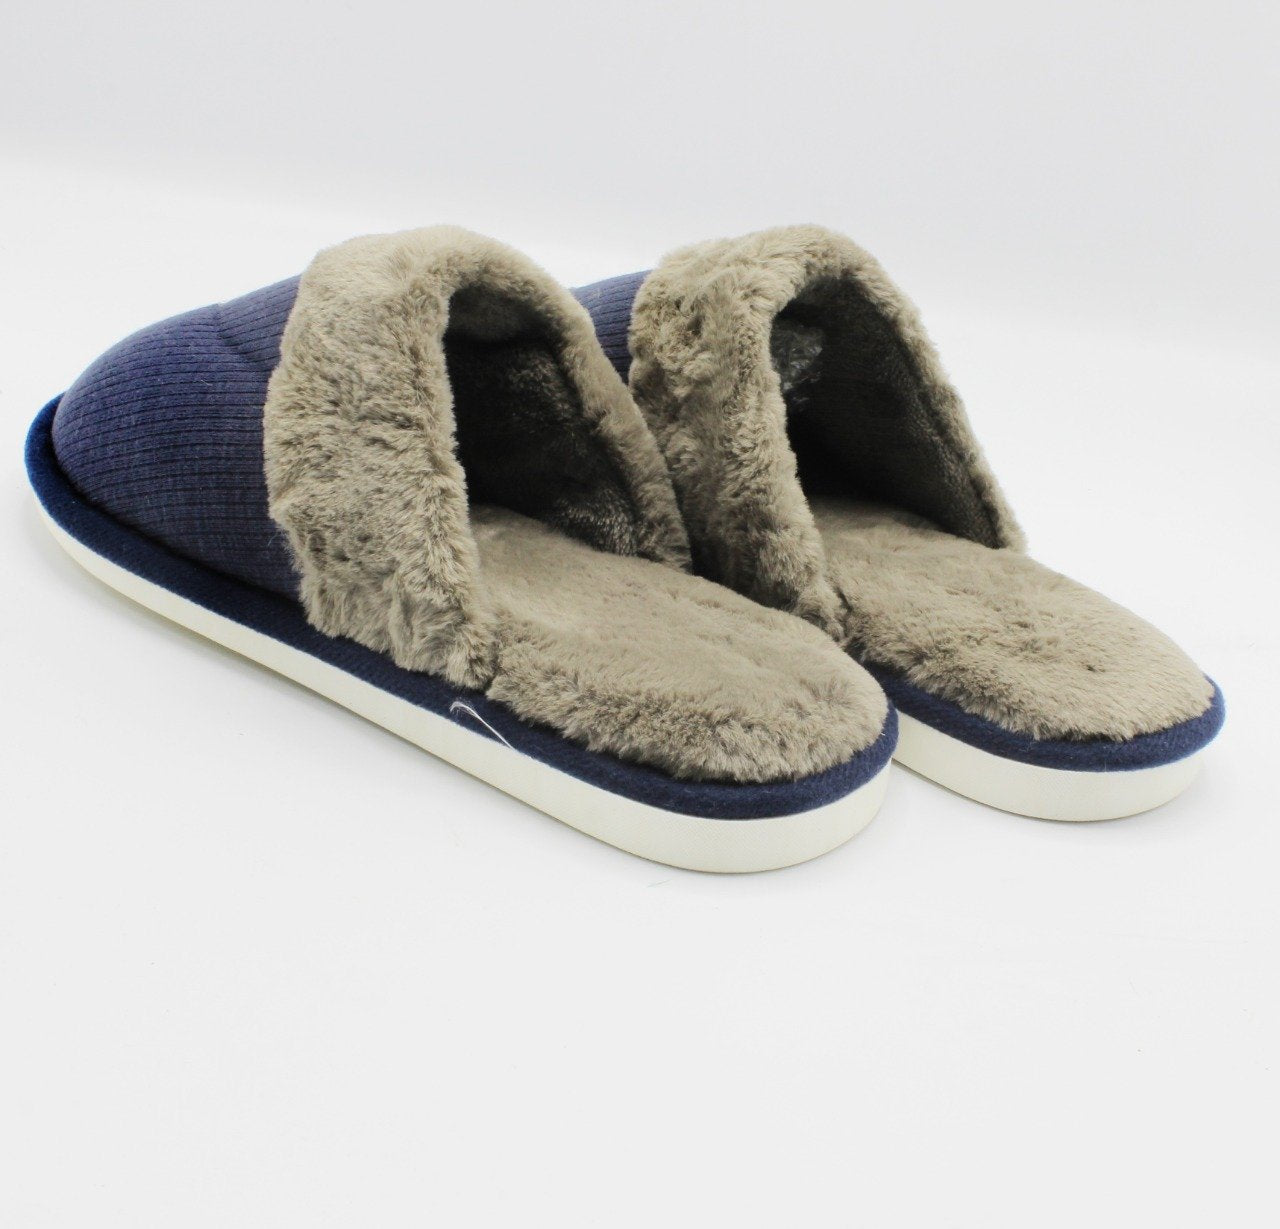 Warm Slippers - waseeh.com